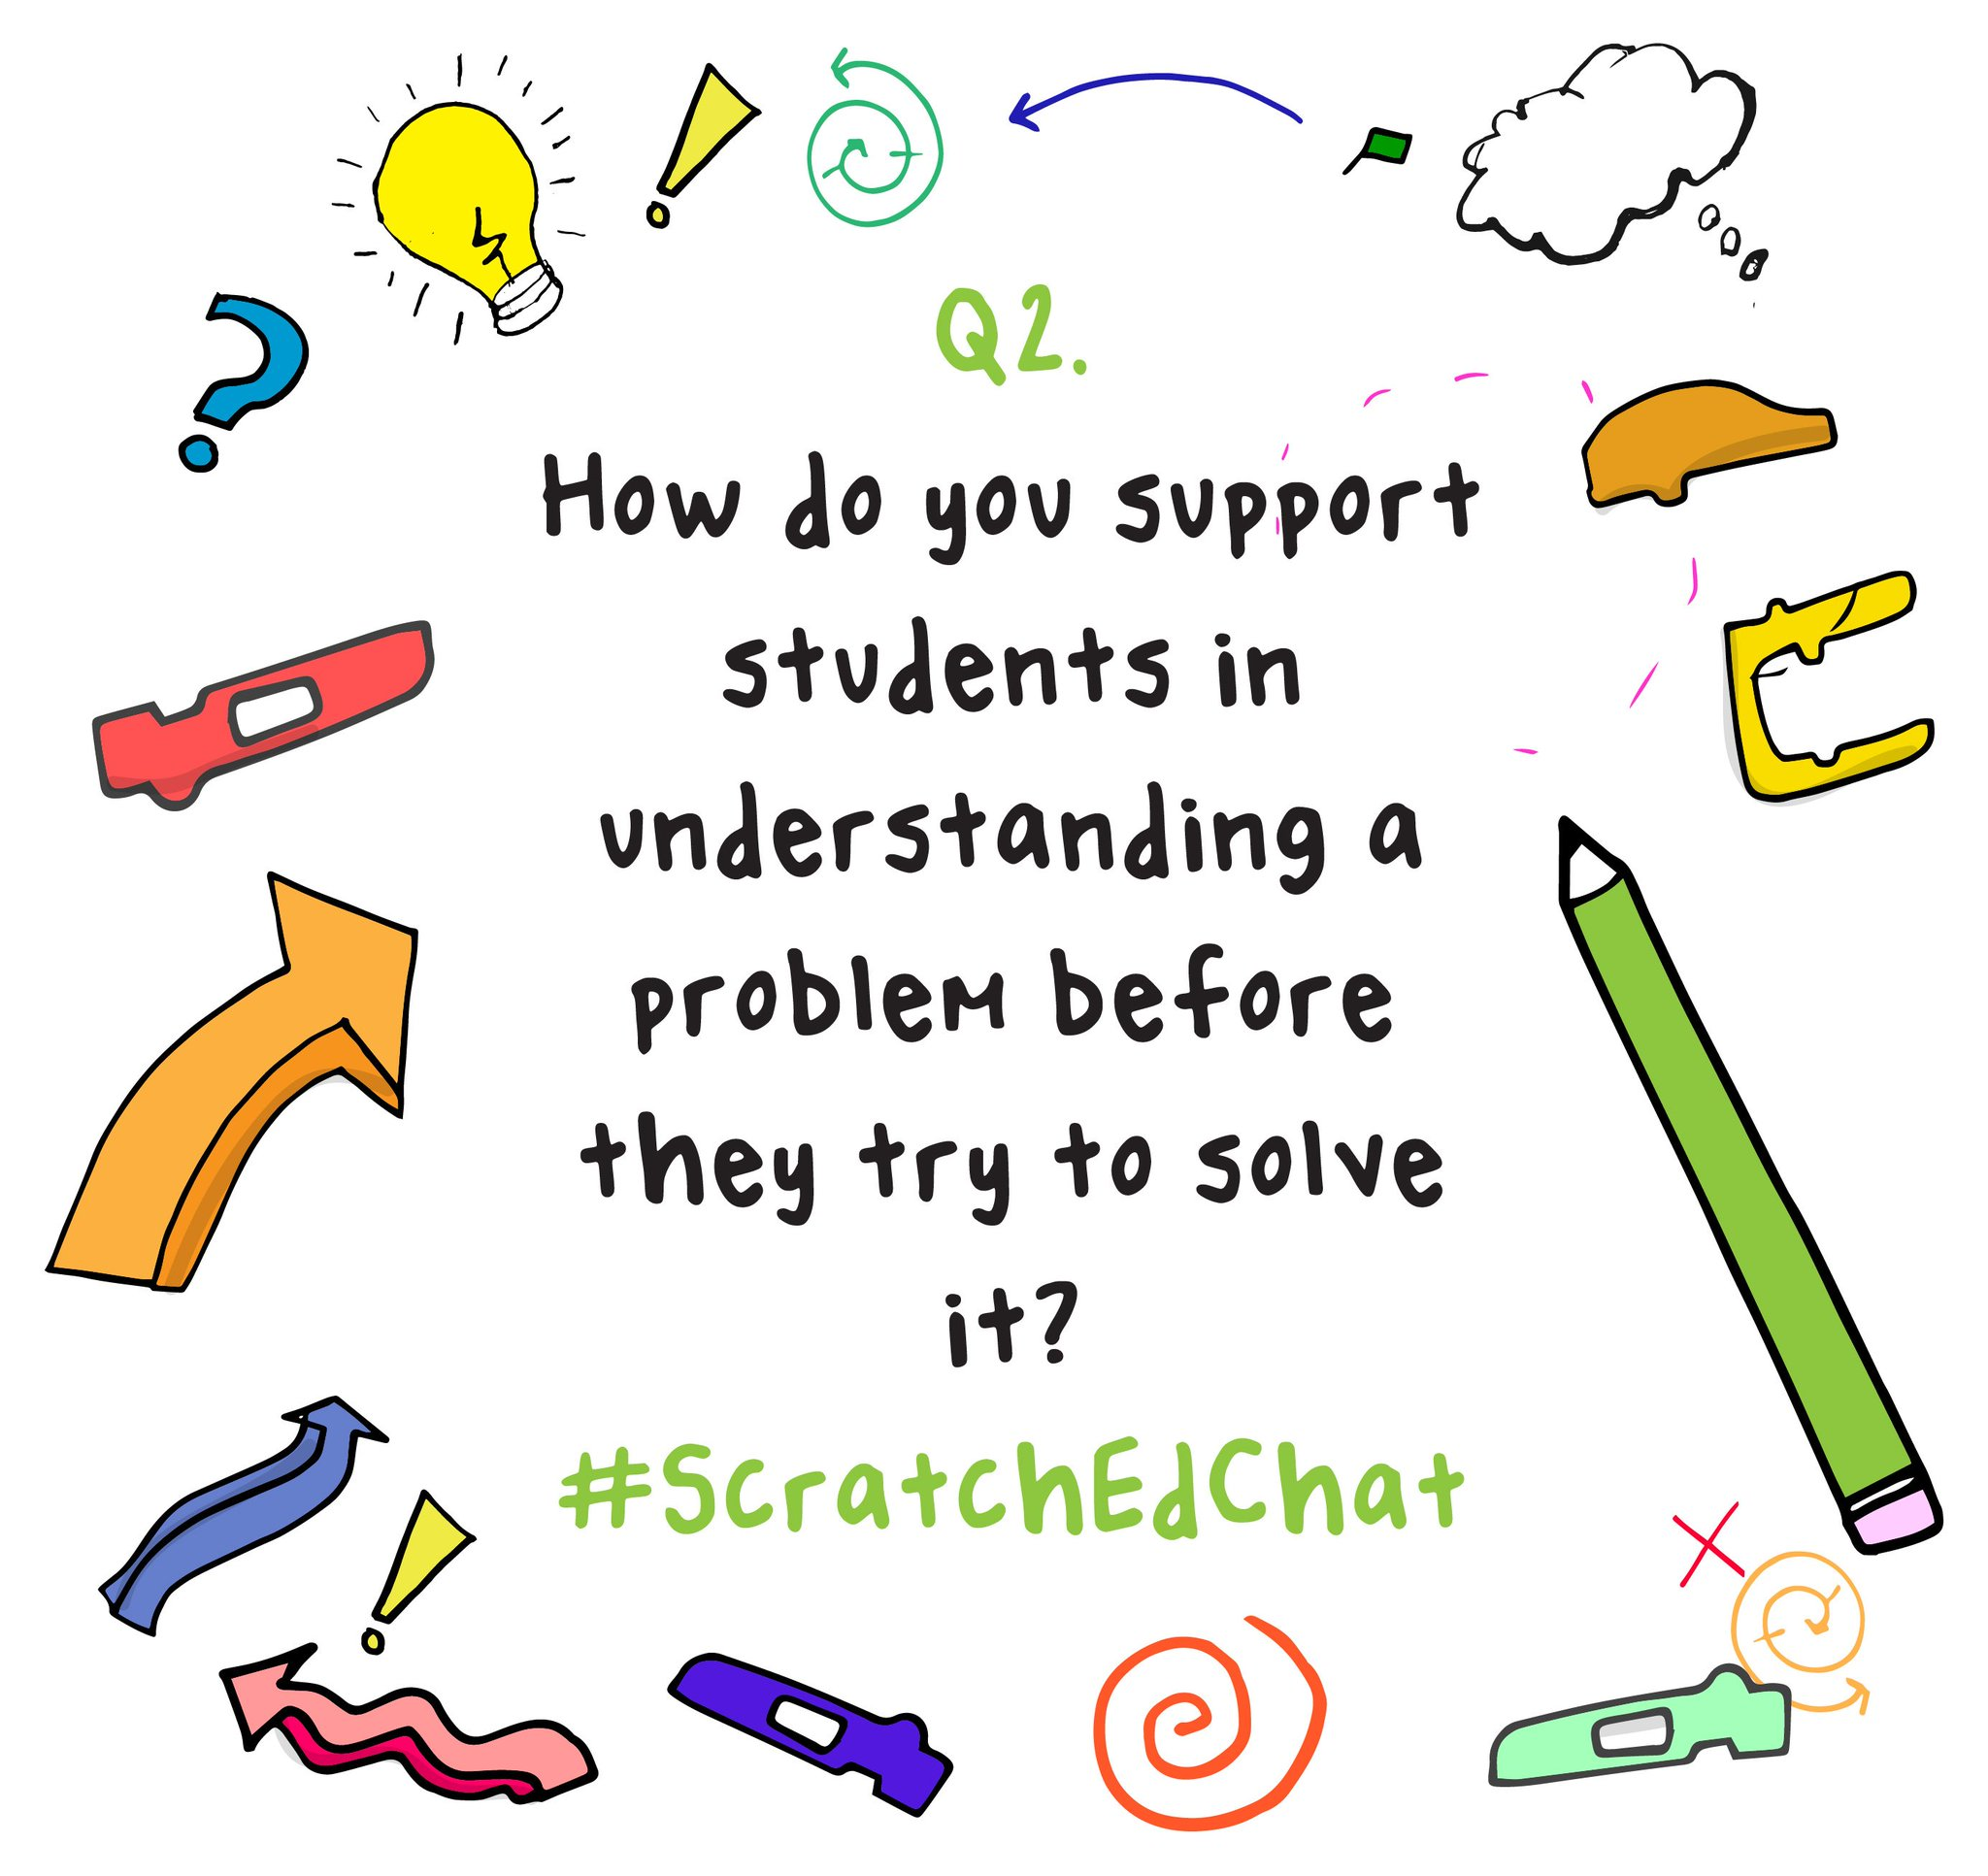 Q2. How do you support students in *understanding* a problem before they try to solve it? #ScratchEdChat https://t.co/9V8gSsGavE